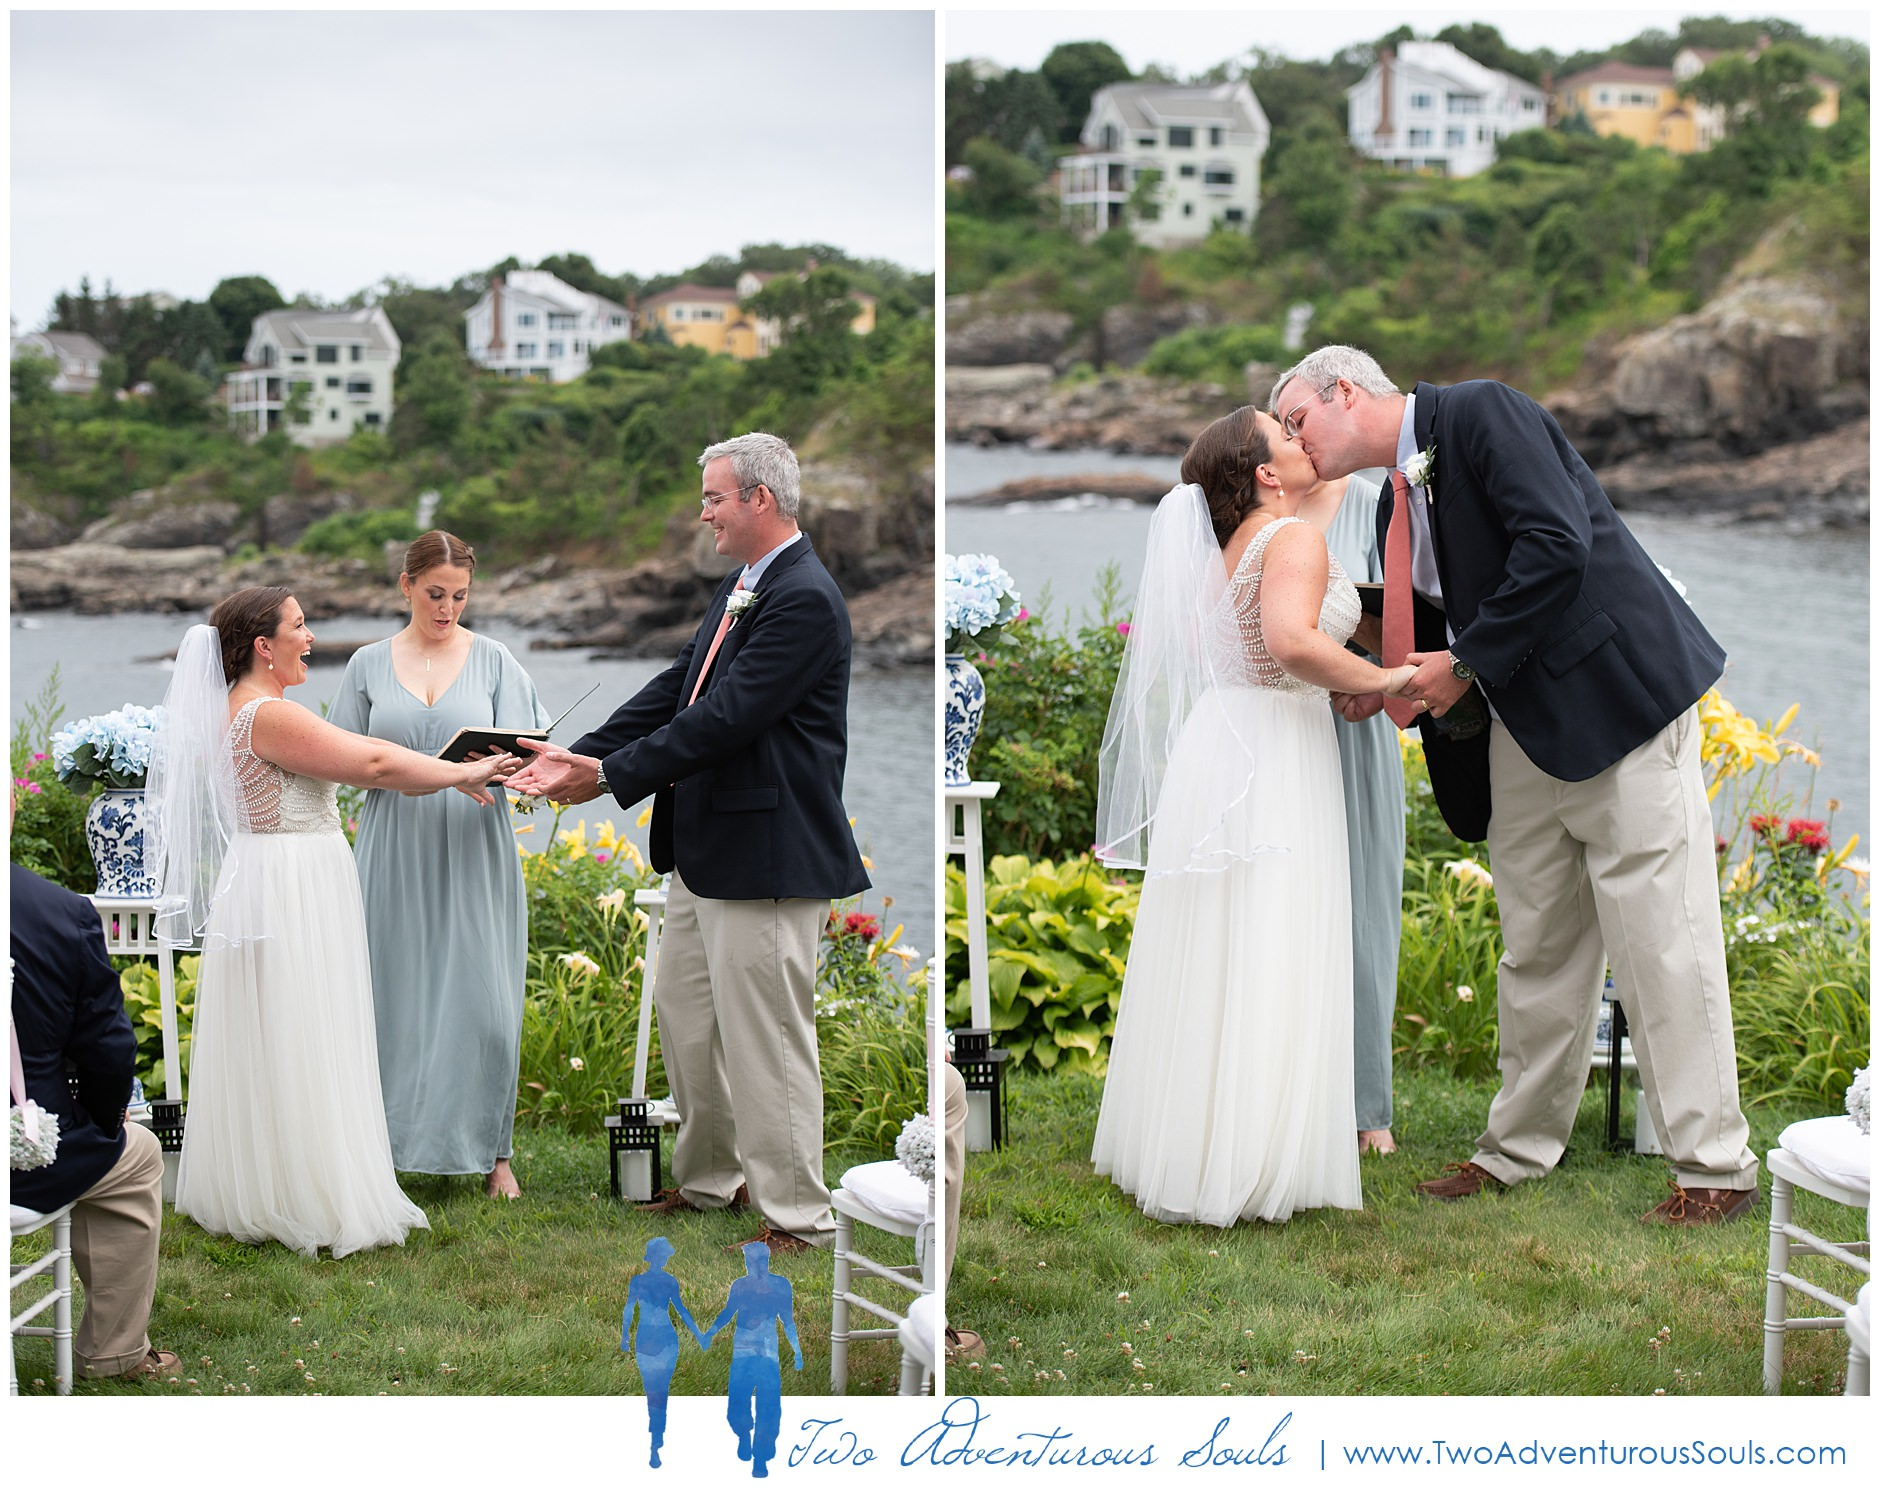 Maine Wedding Photographers, Ogunquit Wedding Photographers, Maine Elopement Photographers, Two Adventurous Souls-080619_0015.jpg